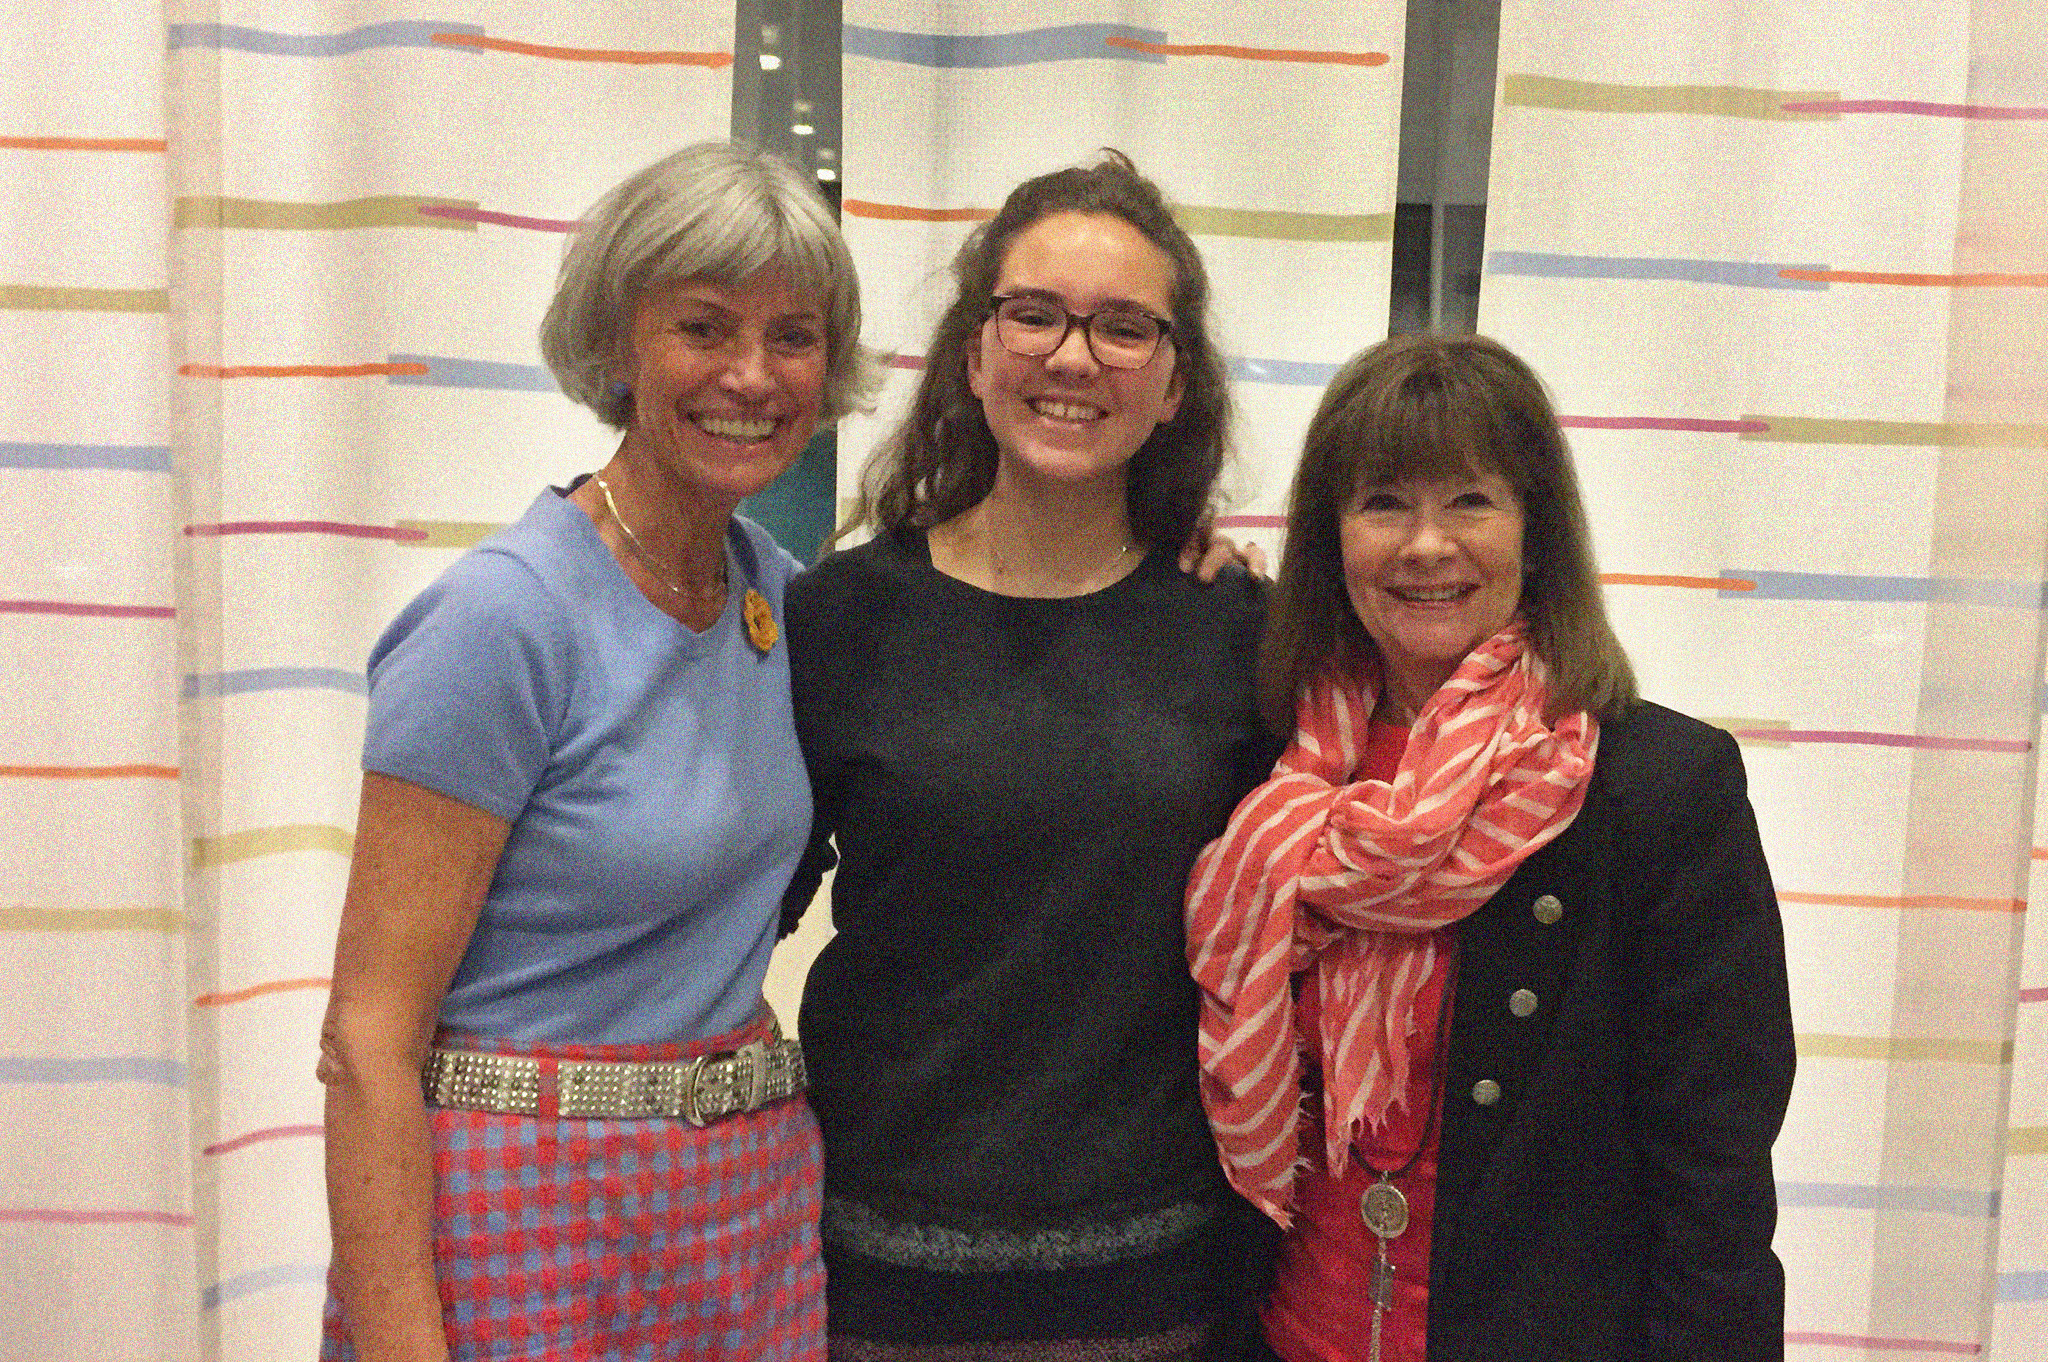 Helen (centre) with Reidun (left) and Ragnhild (right)